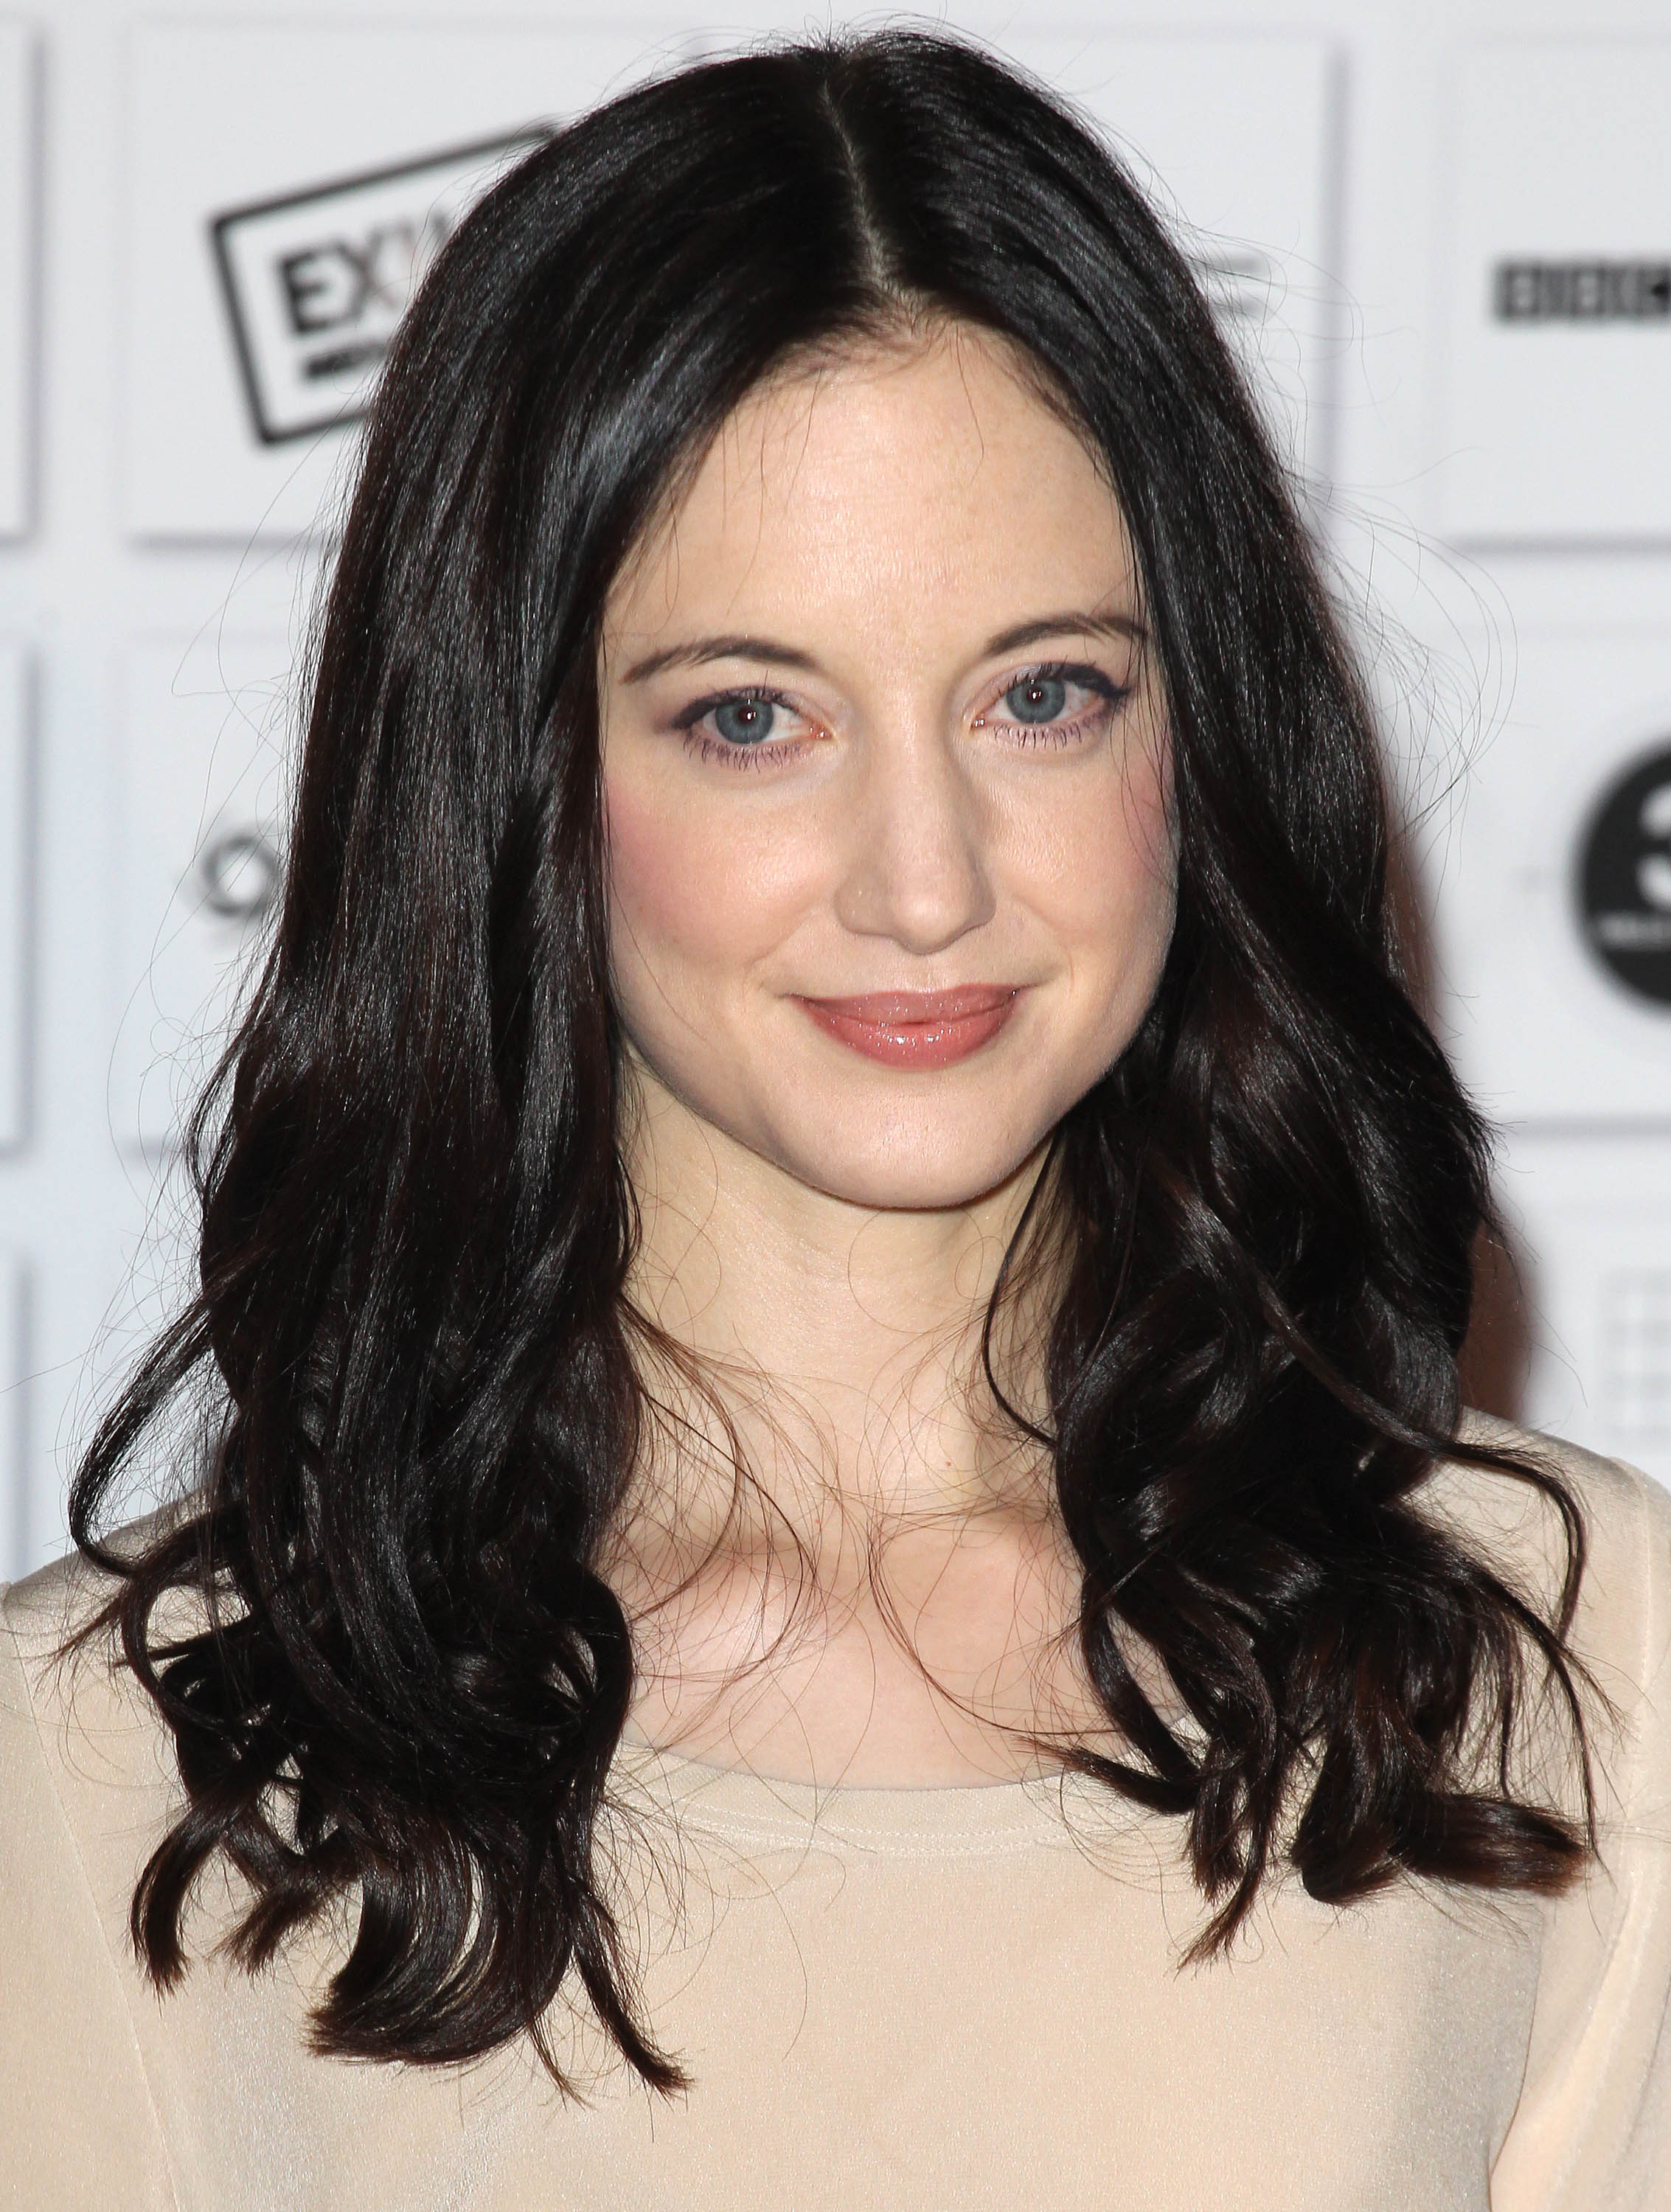 Andrea Riseborough Wallpapers High Quality Download Free